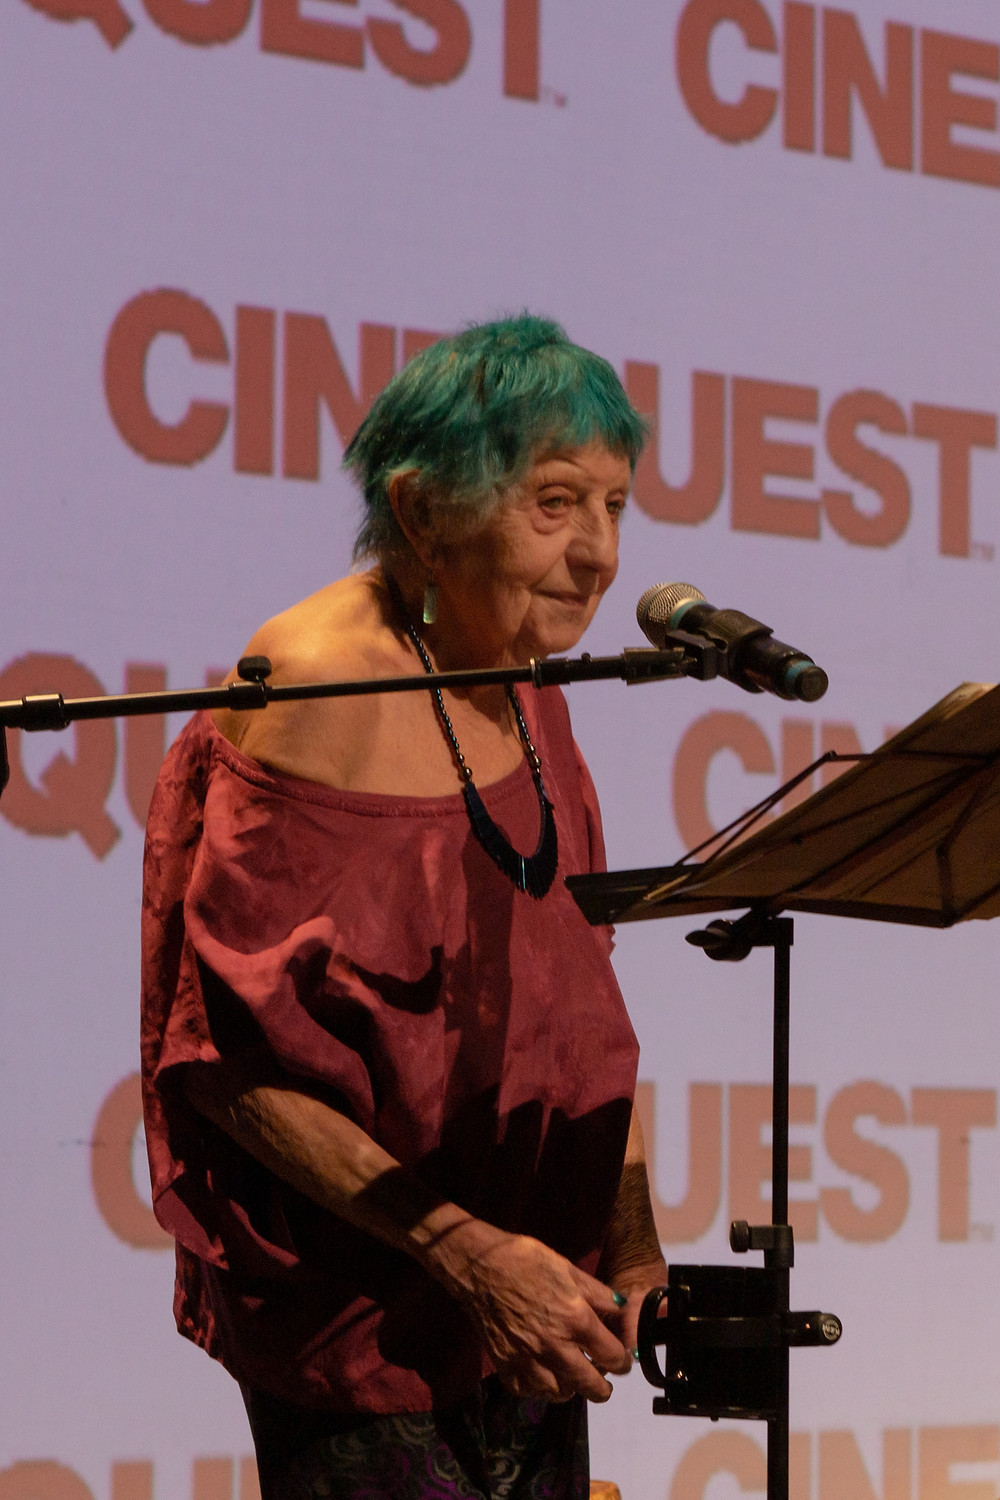 ruth weiss performing at Cinequest Film Festival. Photo by Daniel Nicoletta